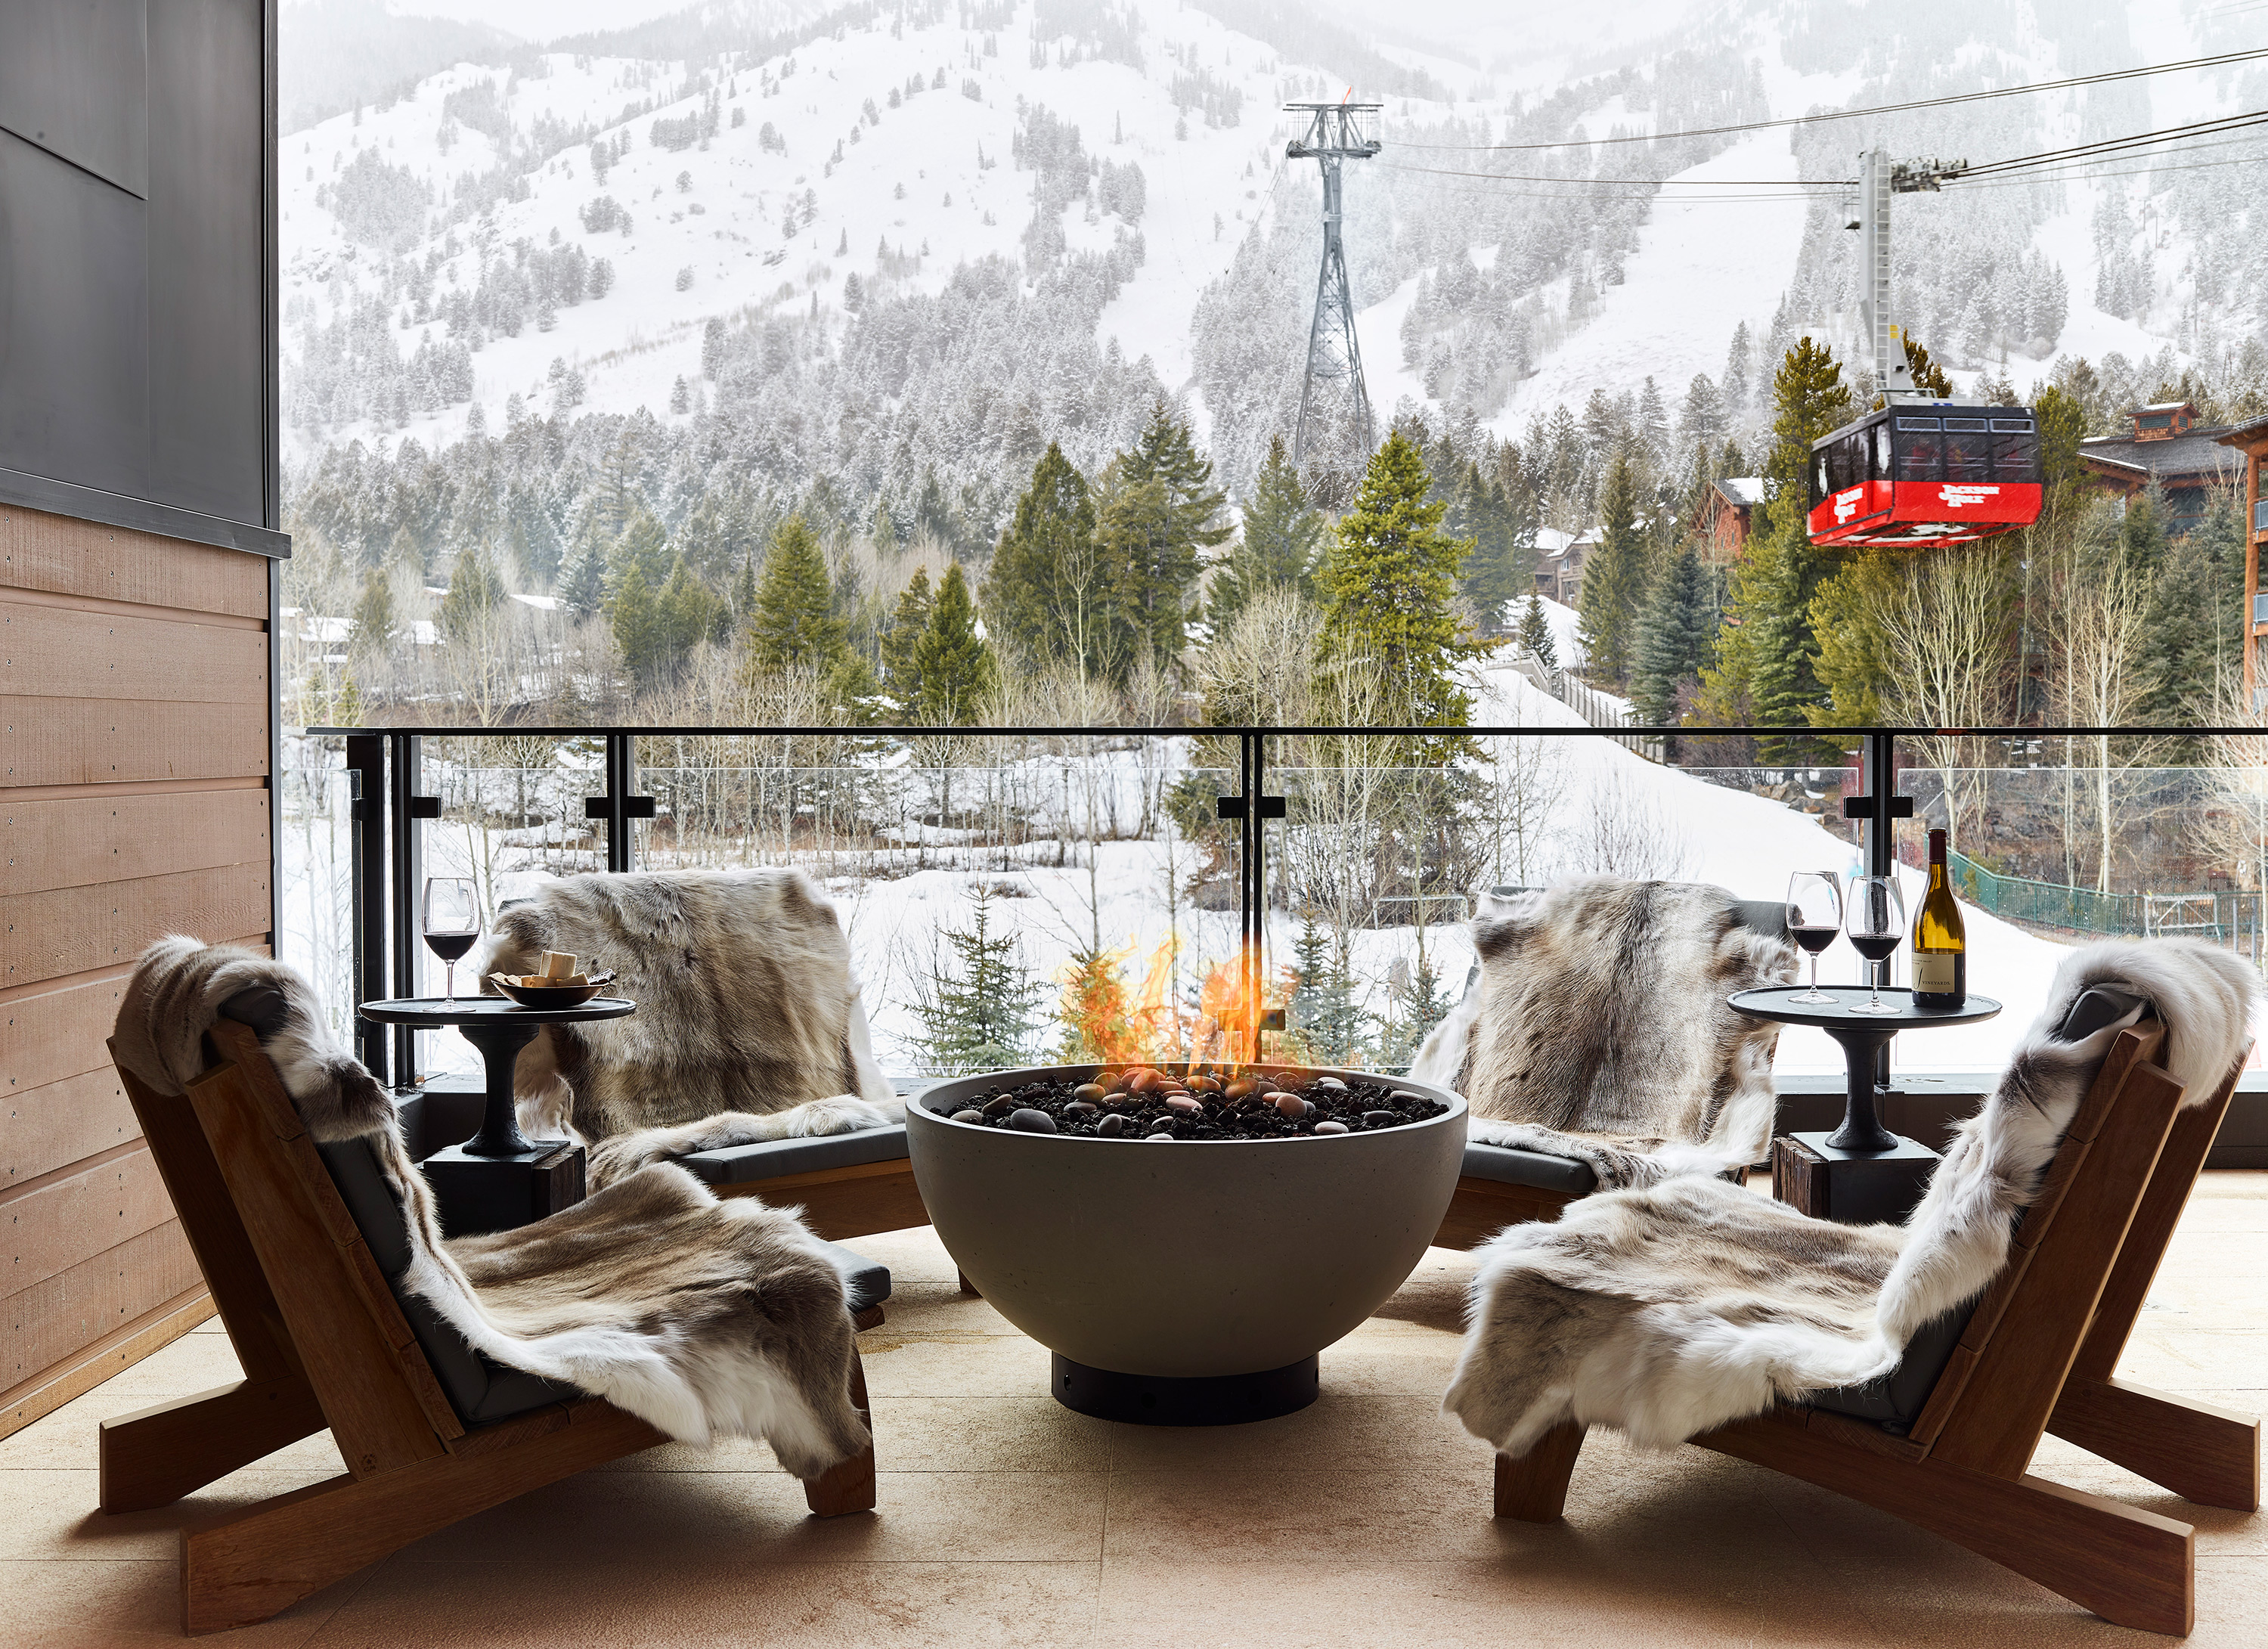 Caldera House Luxury Jackson Hole Mountain Hotel Teton